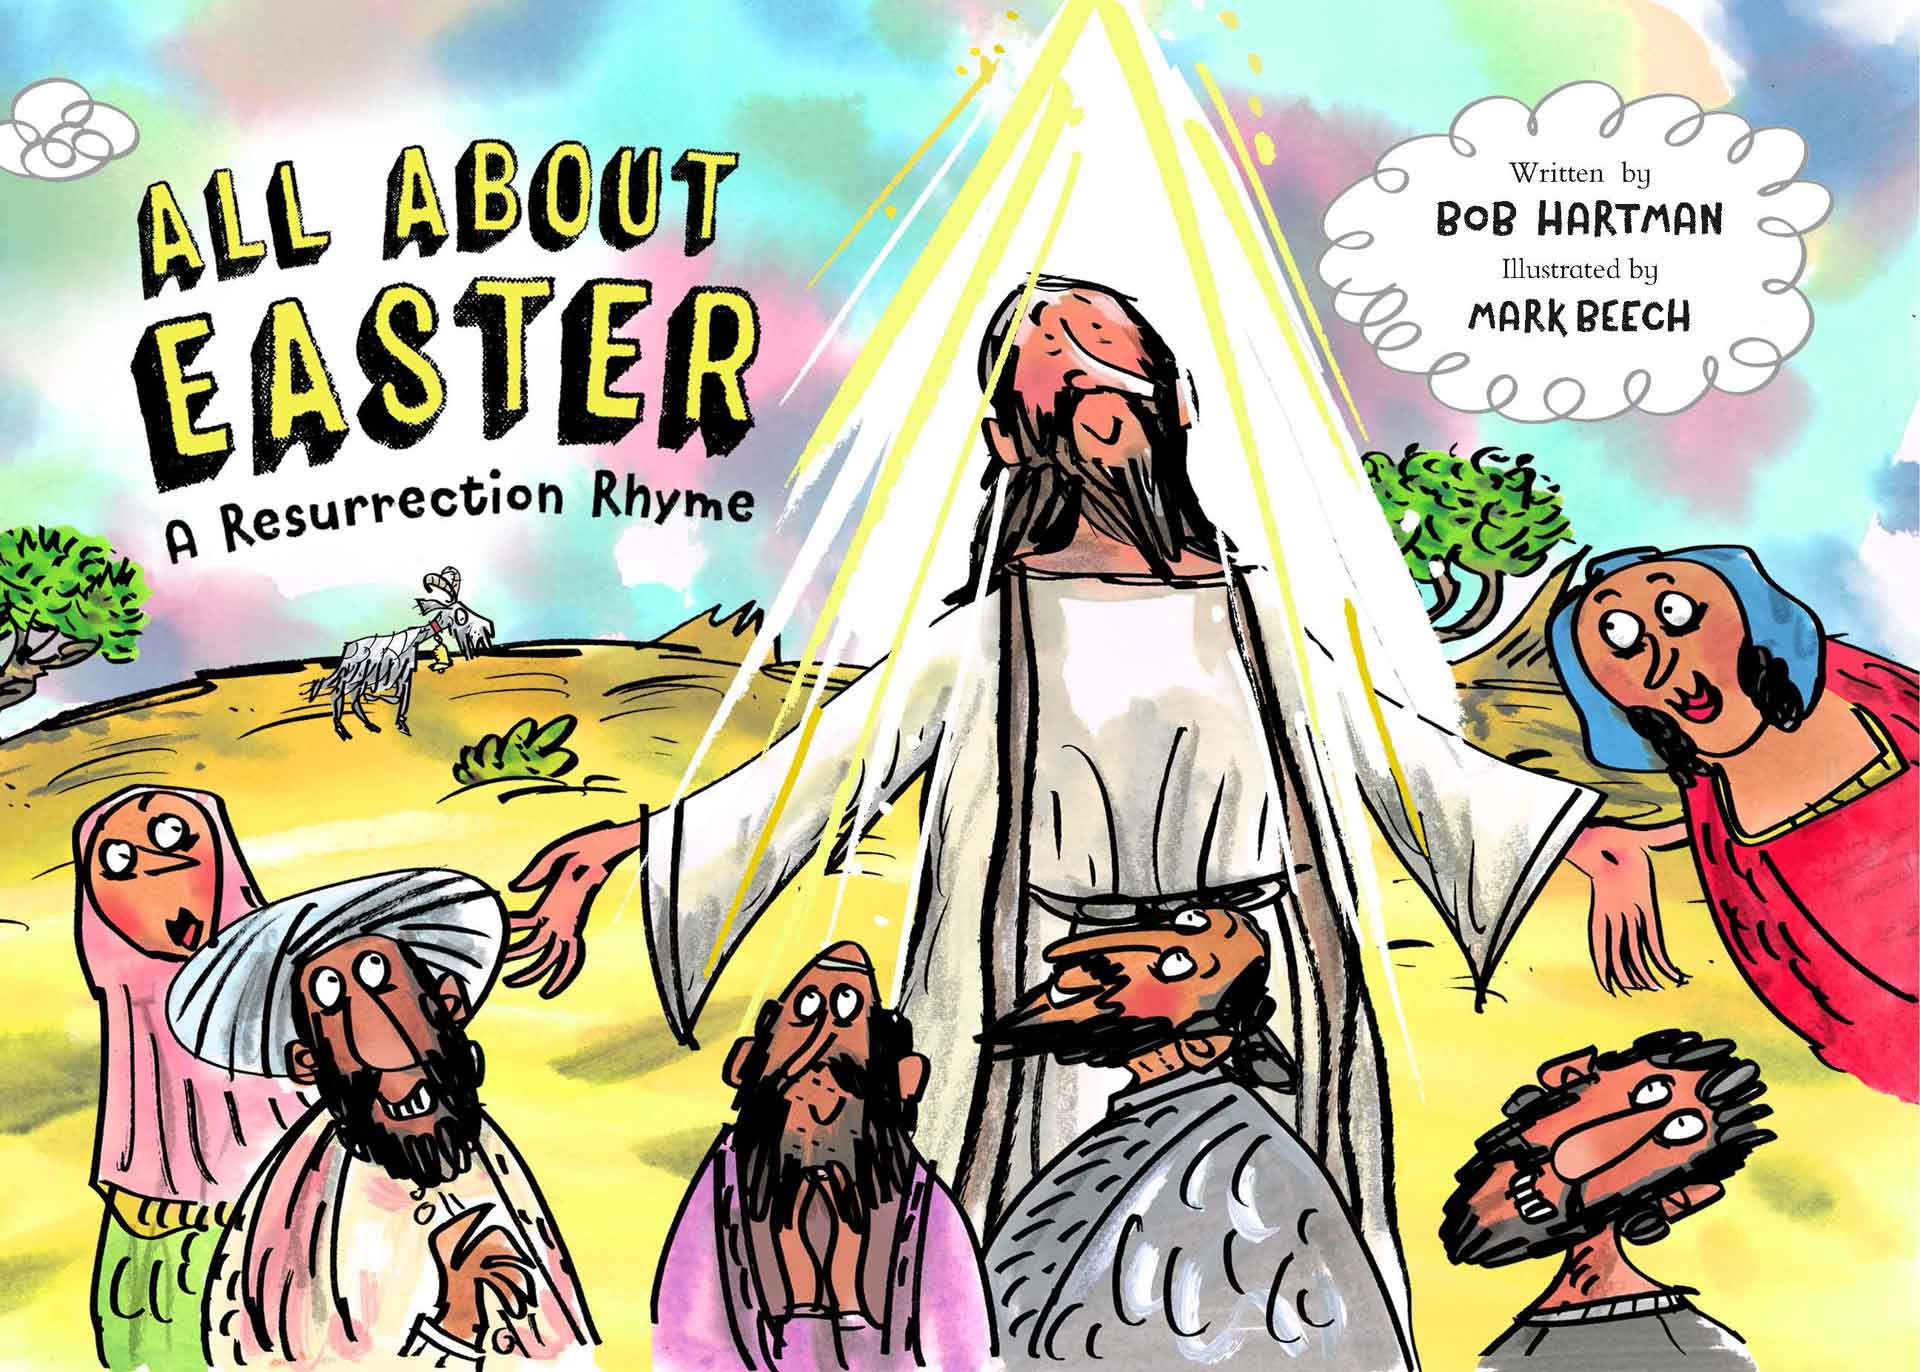 All About Easter: A Resurrection Rhyme